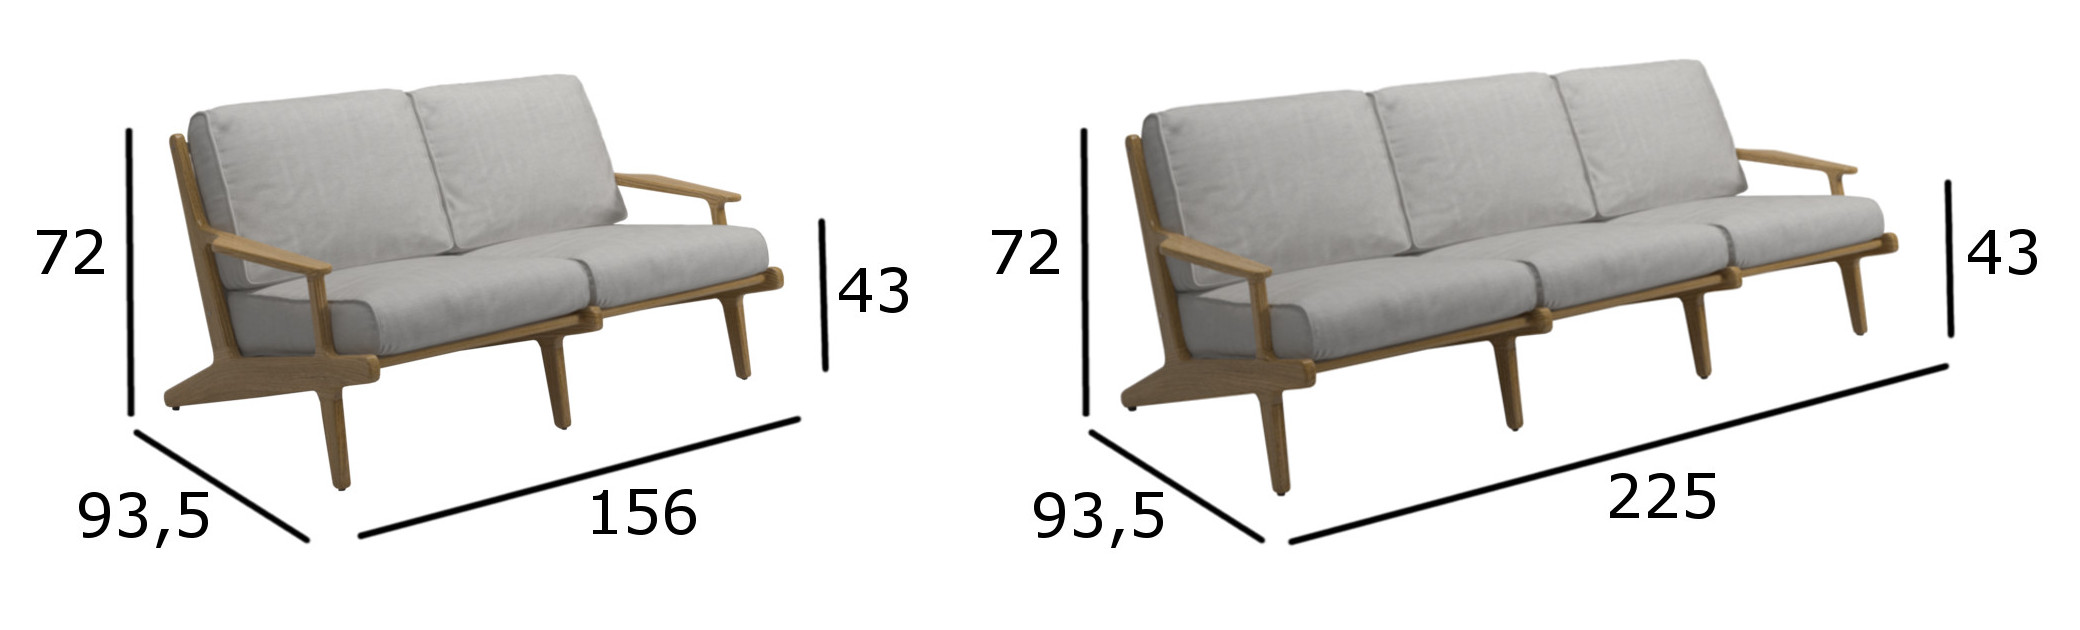 Bay Sofa Linear Sofas Armchairs And